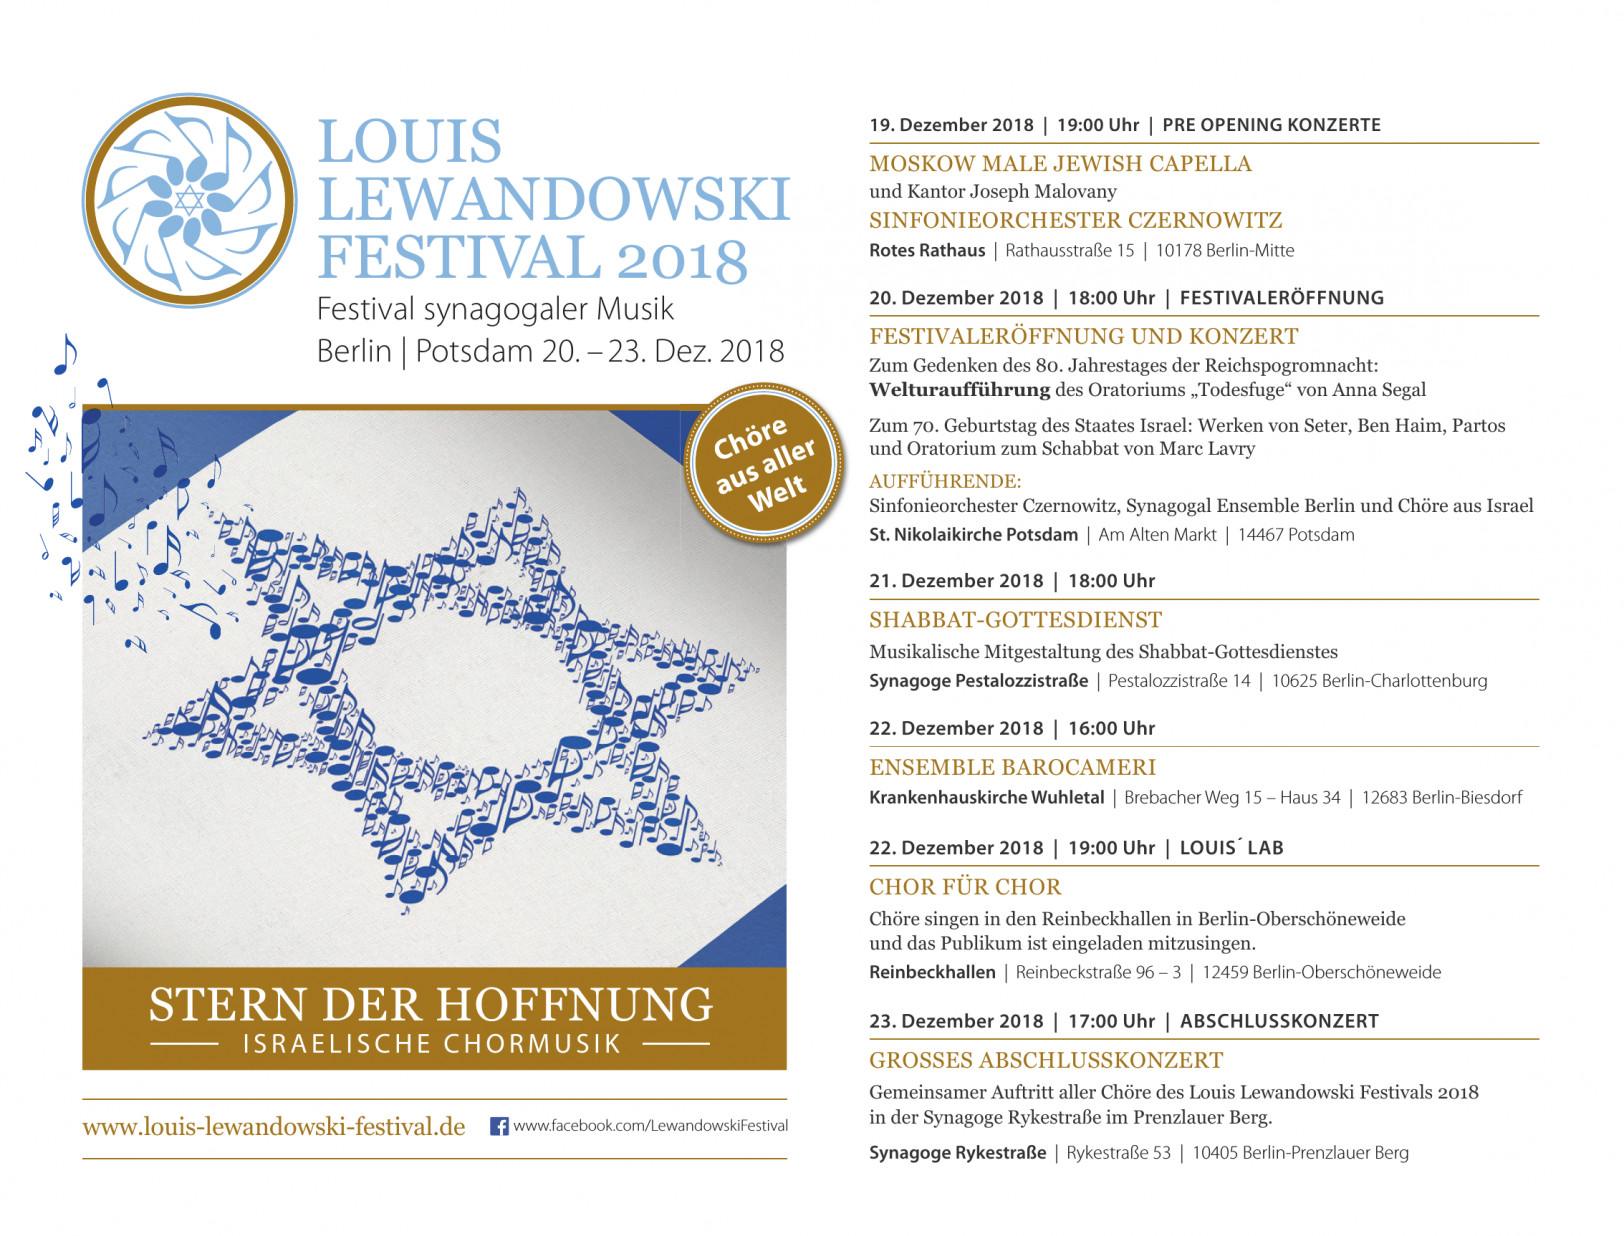 Louis Leandowski Festival 2016